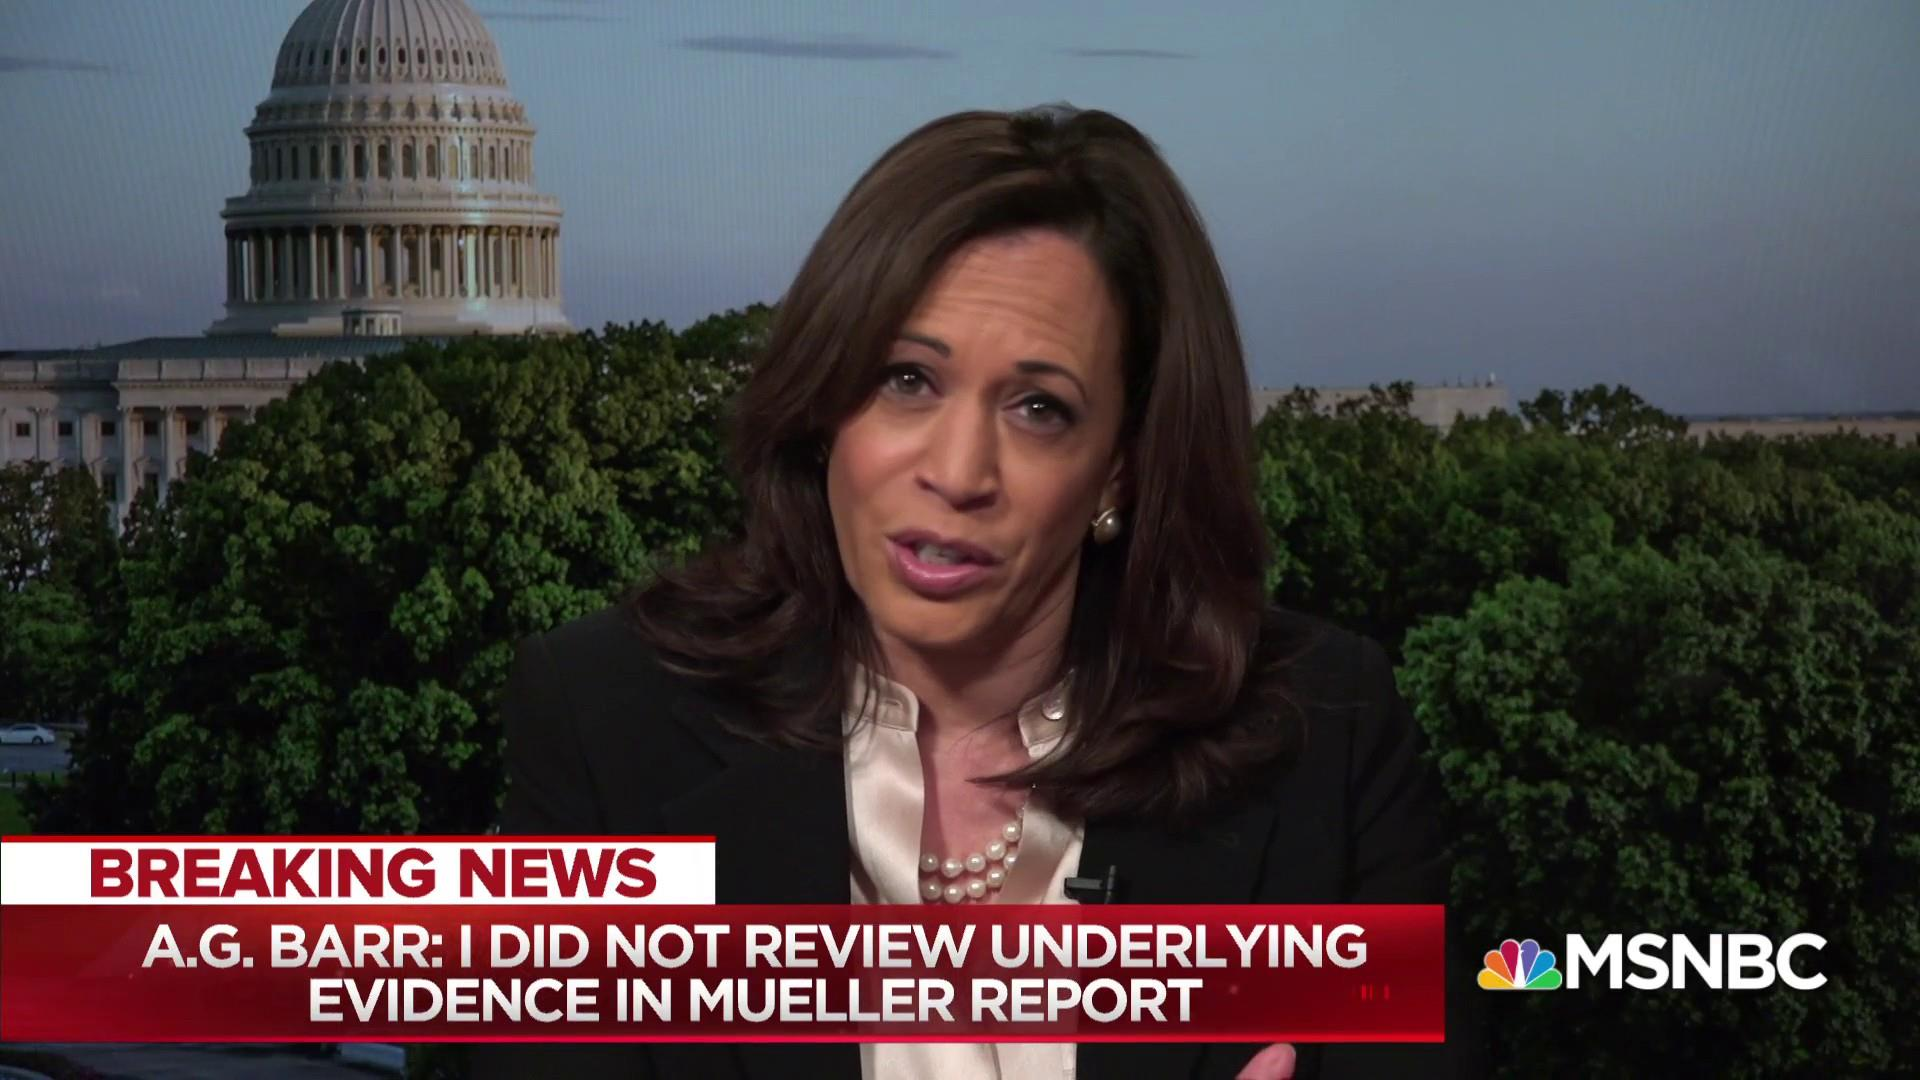 Sen. Harris: Barr clearly intended to mislead the American public